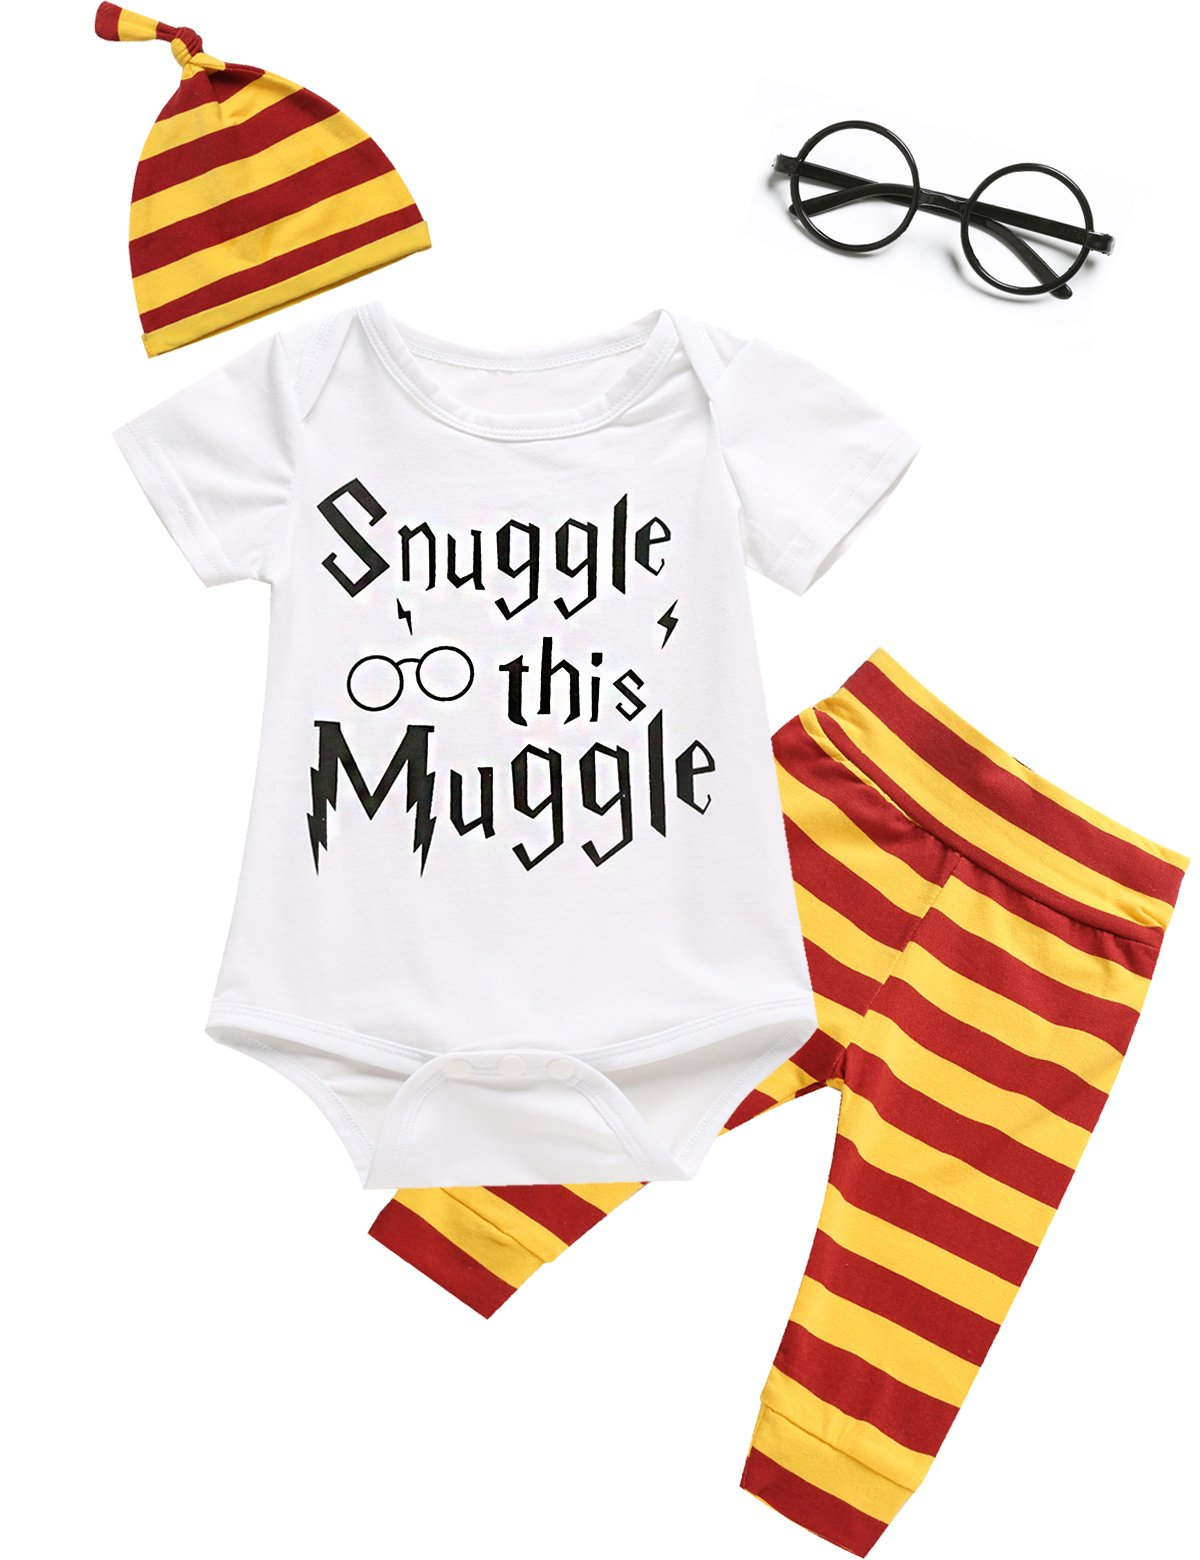 Angebebe 4Pcs Outfit Set Baby Boy Girls Snuggle This Muggle Romper with Classes (6-12 Months, White)